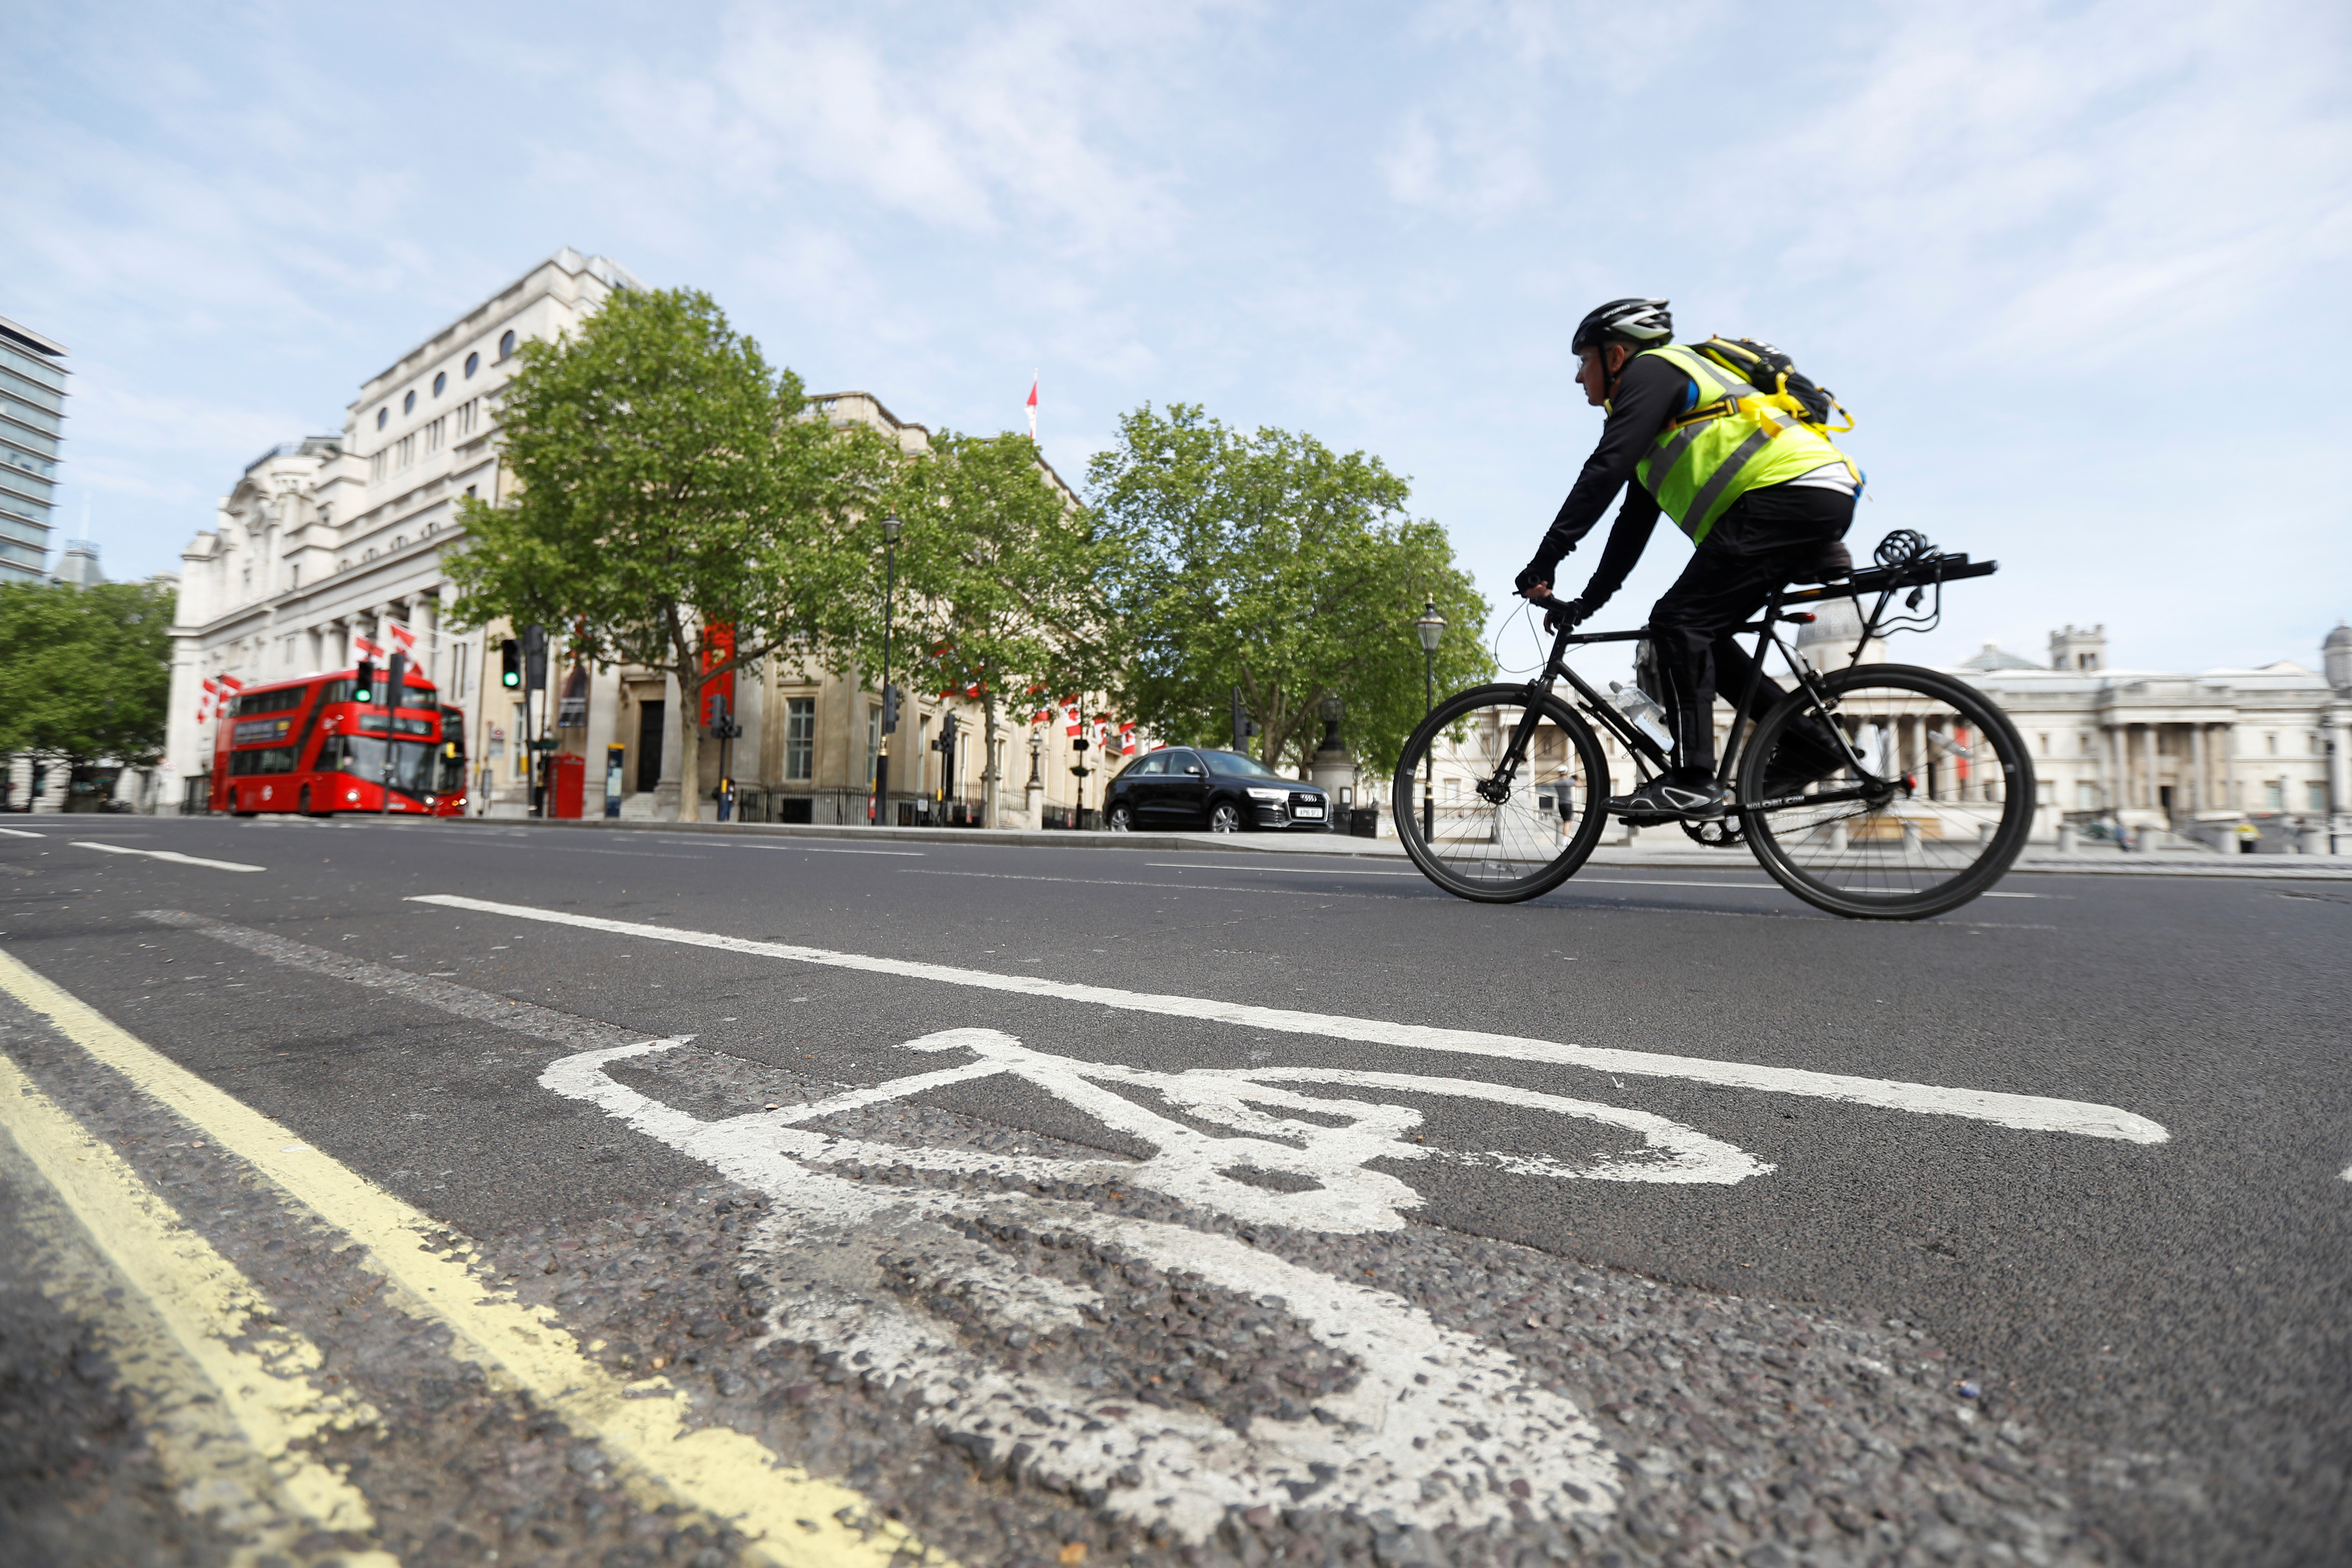 A man cycles on a cycle lane in Trafalgar Square in London.